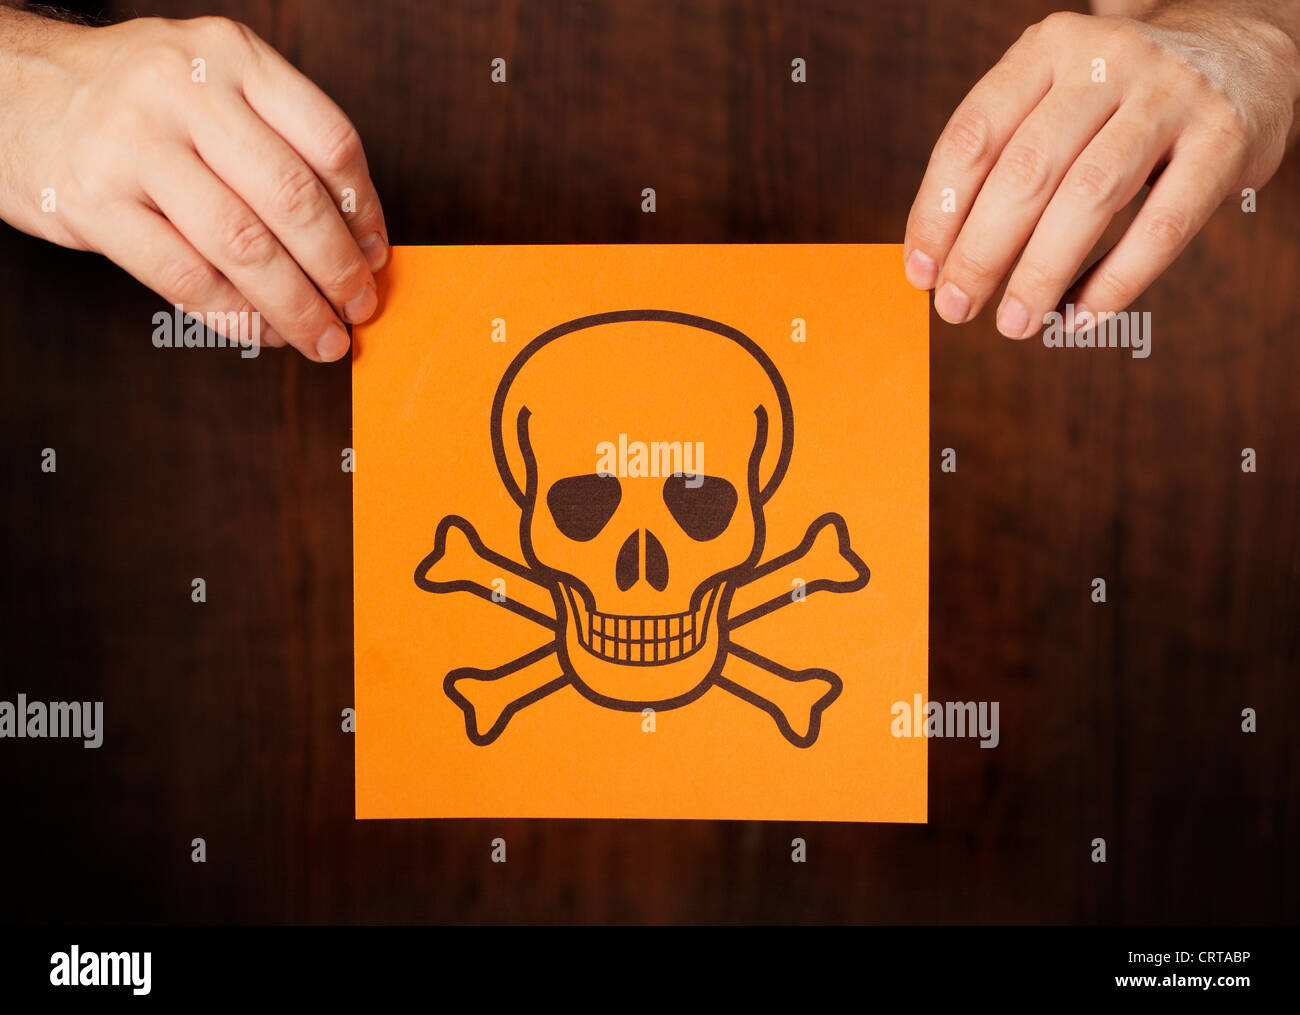 Man holding a warning sign for poison. - Stock Image